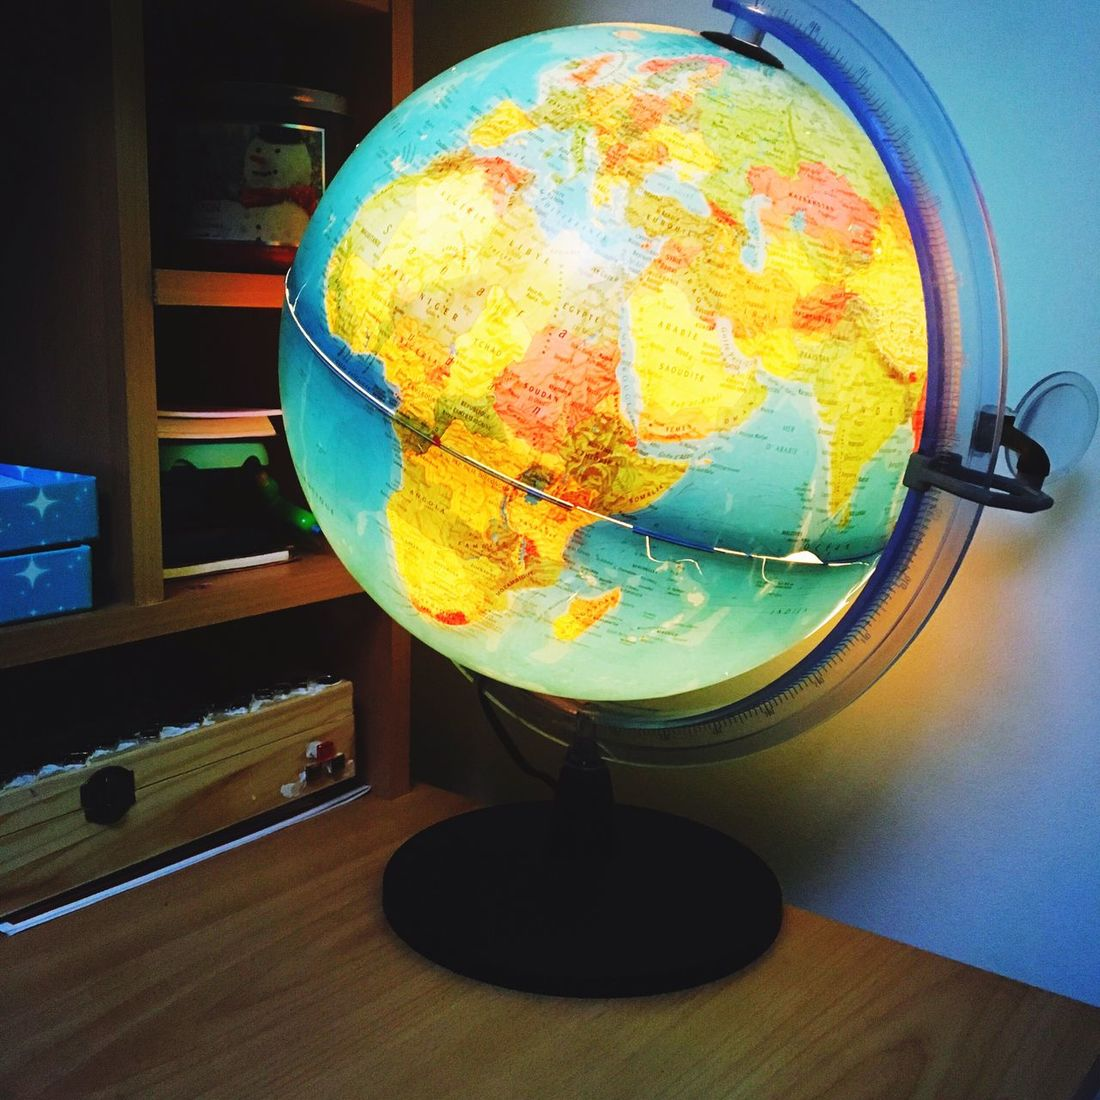 World Travel Traveling Globe Passion Voyage IPhoneography Iphonephotography Memories Enviedevacances enviedevoyage Envie Dream Voyagerofworlds Iphone6s Globe_travel Globe Lumière lumineux Photography Photographic Memory Weekend Rêve Jeunesse young Young Adult